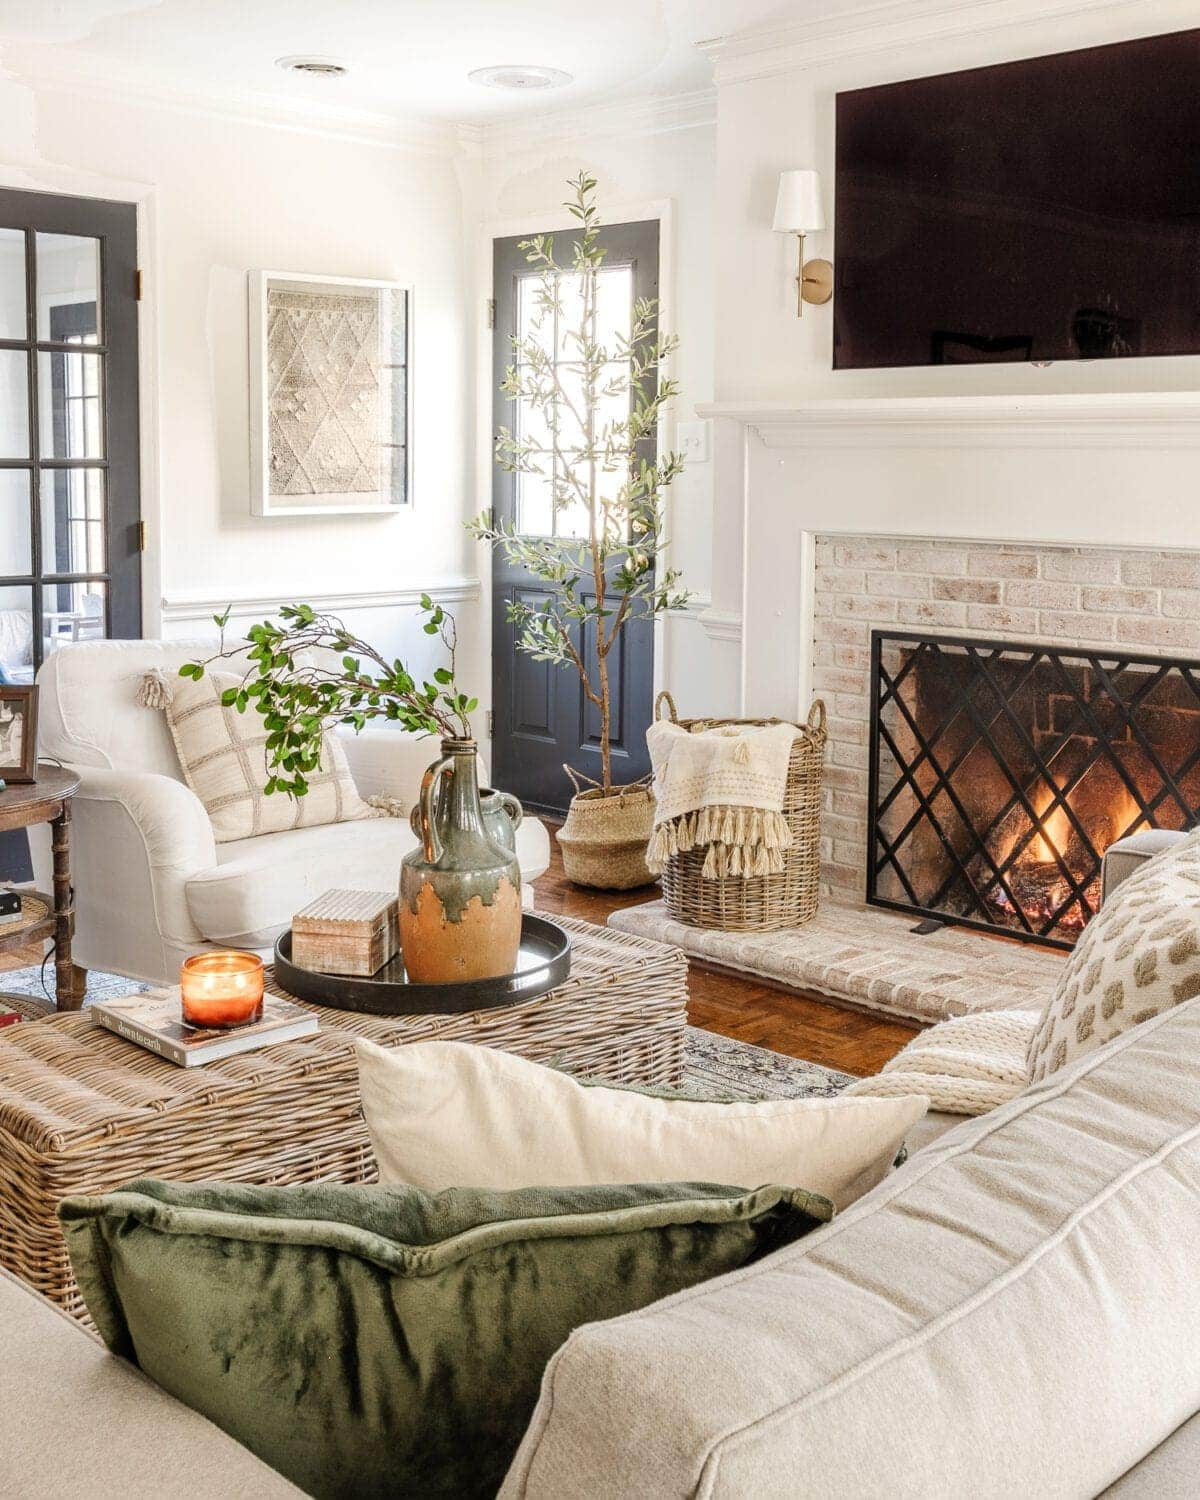 4 decor elements every room needs to create a warm, cozy, vibrant space for winter and year-round, plus how to add life to a neutral palette.